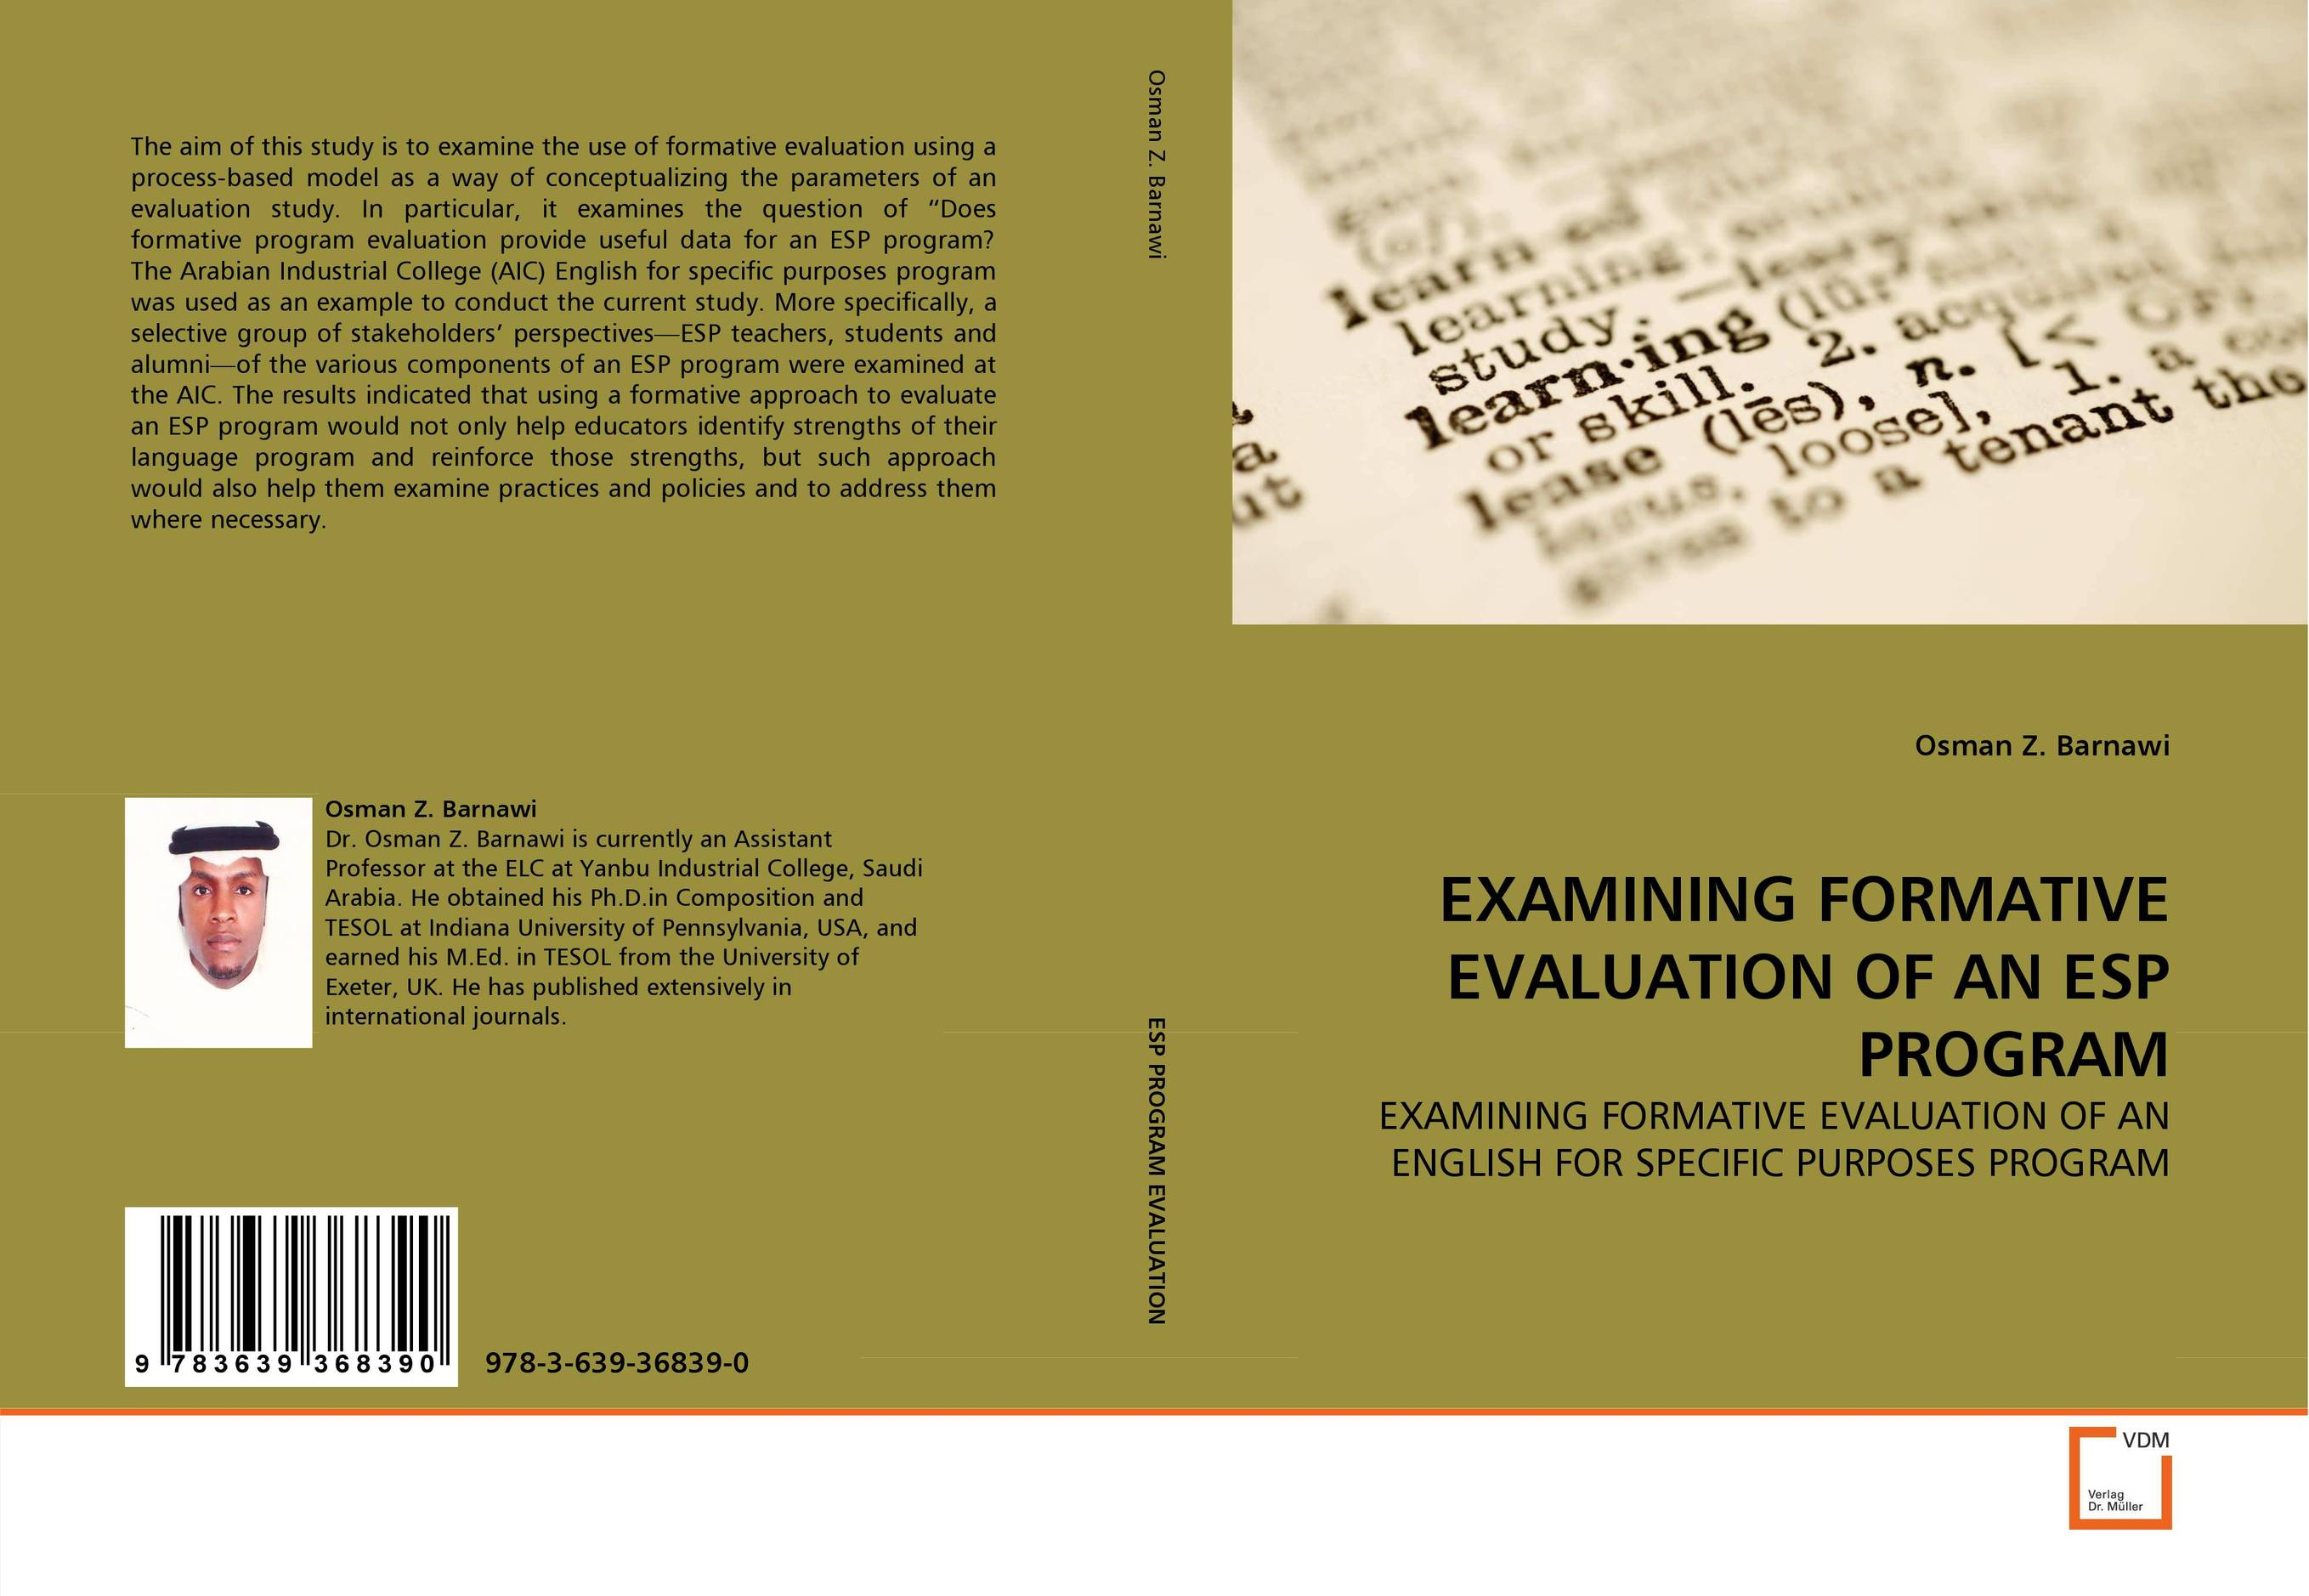 EXAMINING FORMATIVE EVALUATION OF AN ESP PROGRAM new original rm1 1289 000cn rm1 1289 rm1 1289 000 110v rm1 2337 000cn rm1 2337 220v for hp3390 3390 fuser assembly on sale